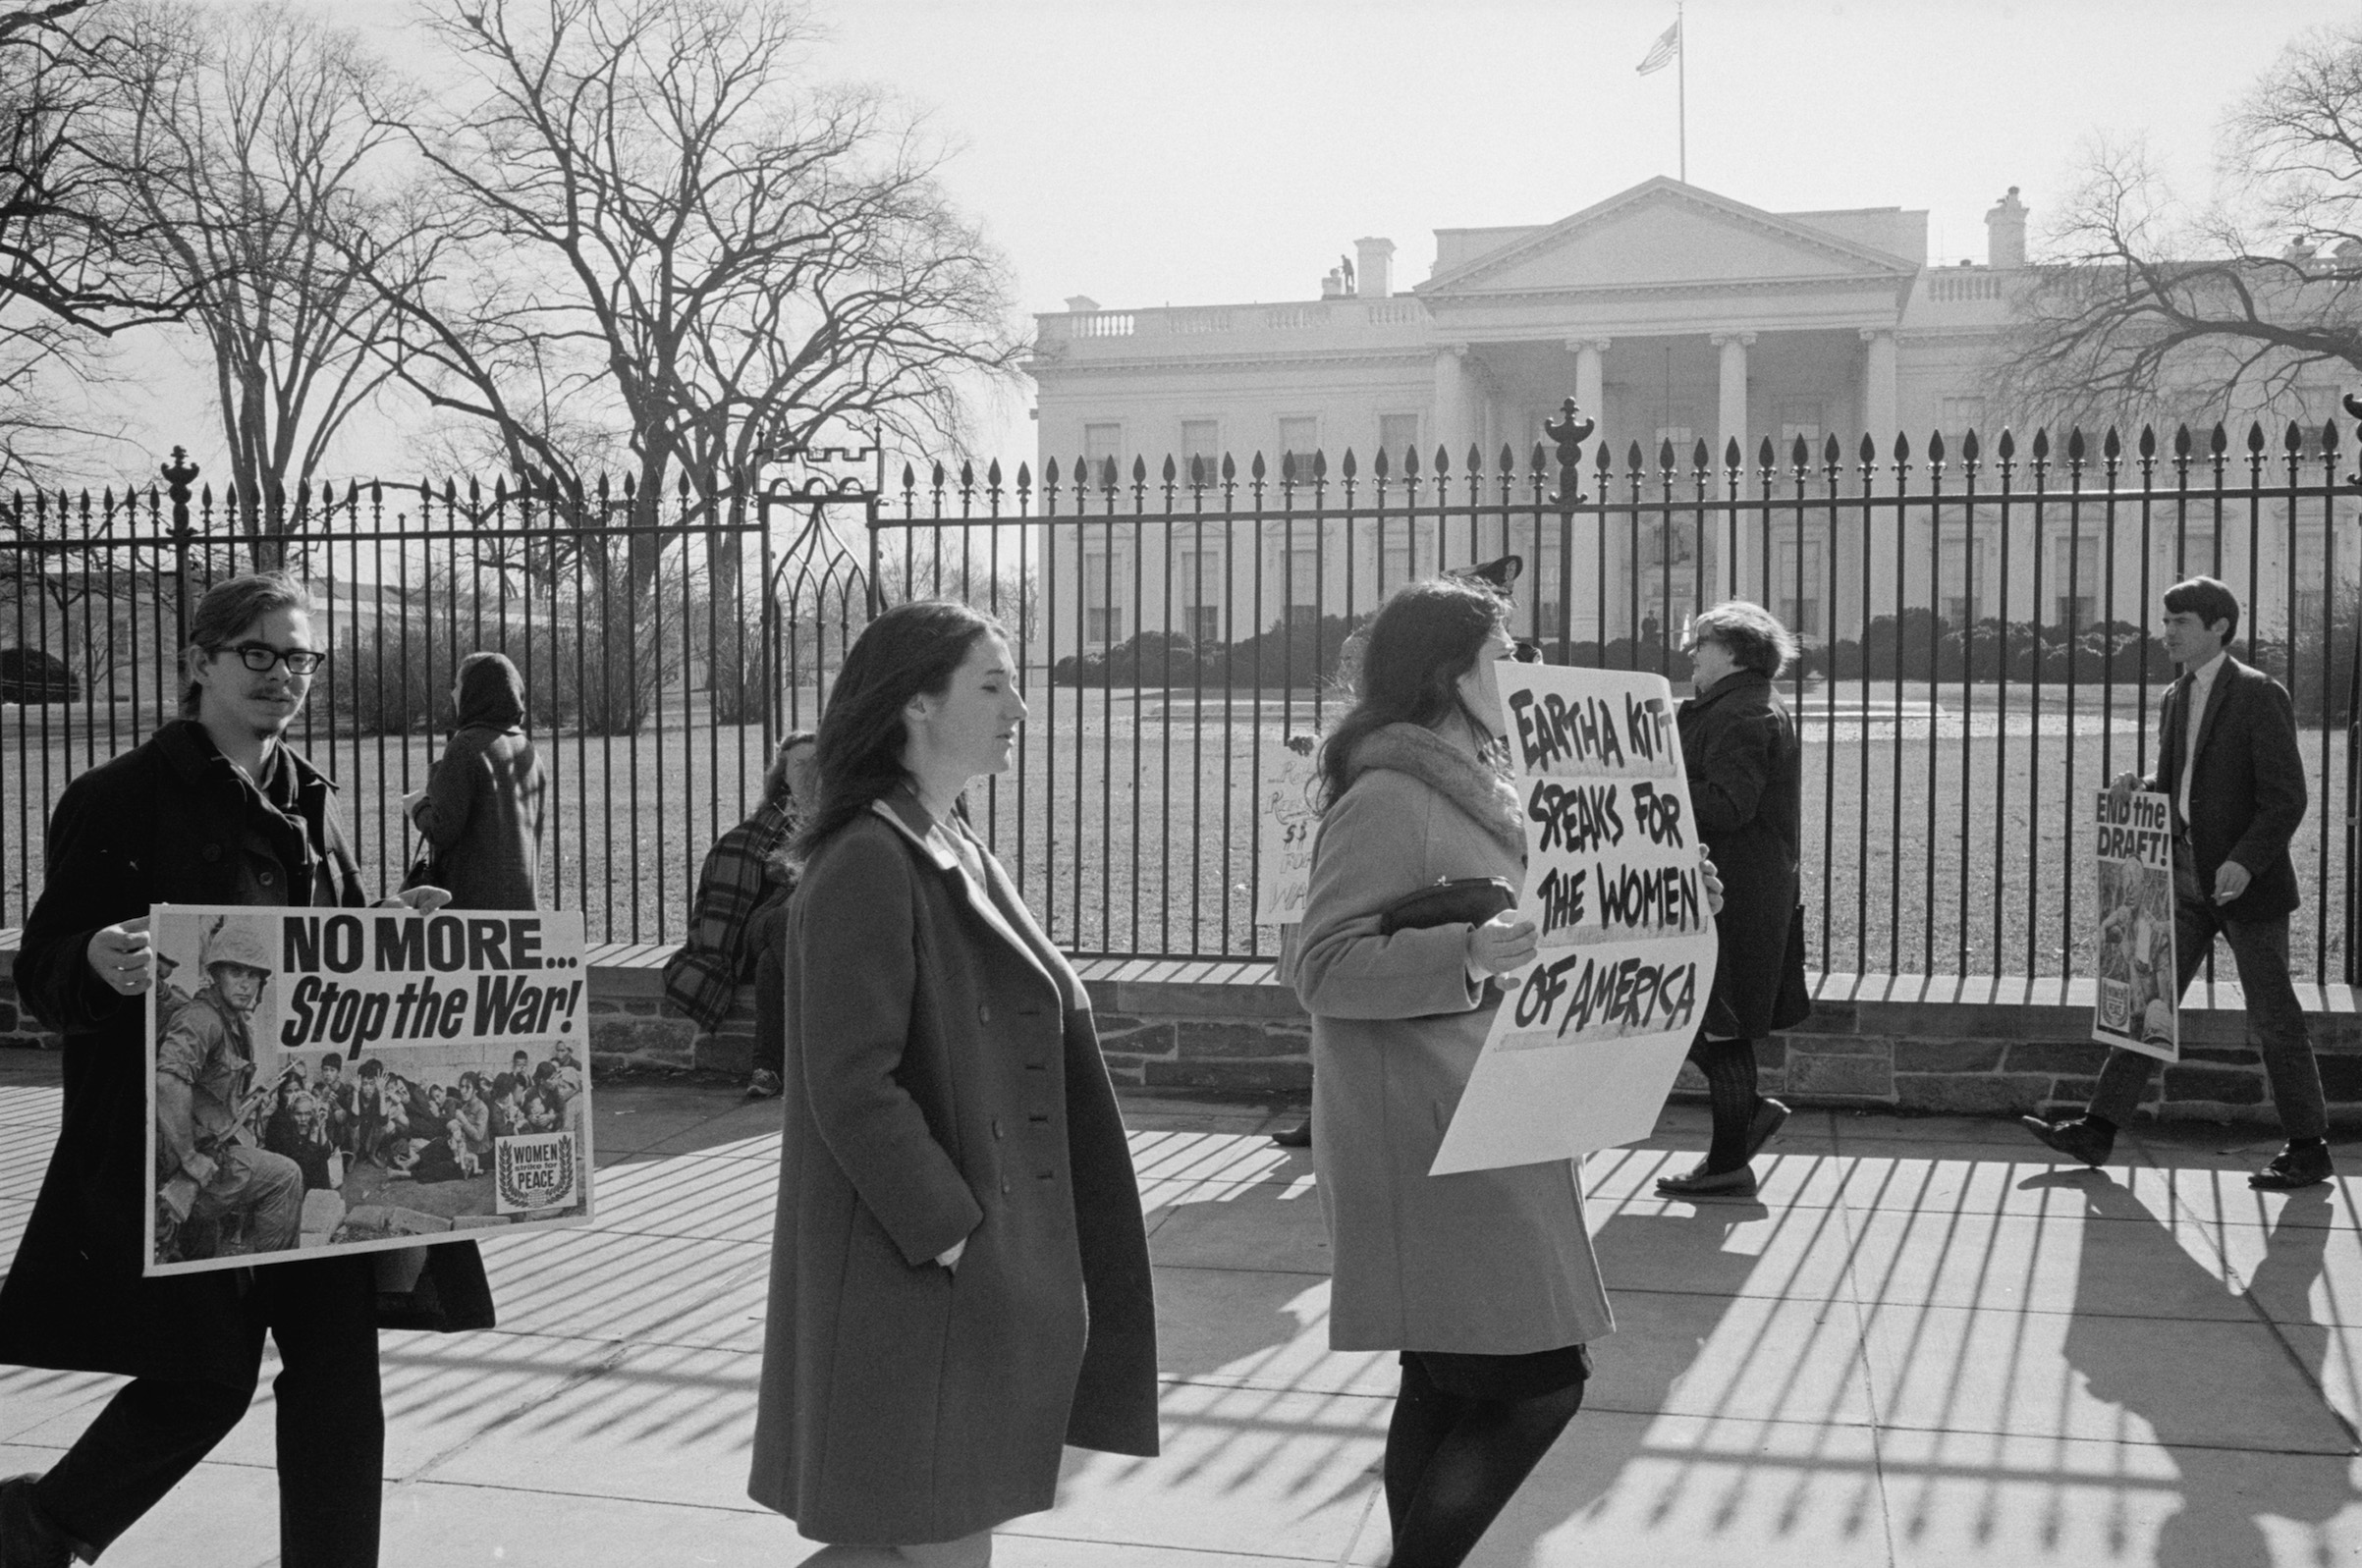 Anti-war demonstrators picketing in front of the White House on Jan. 19, 1968.